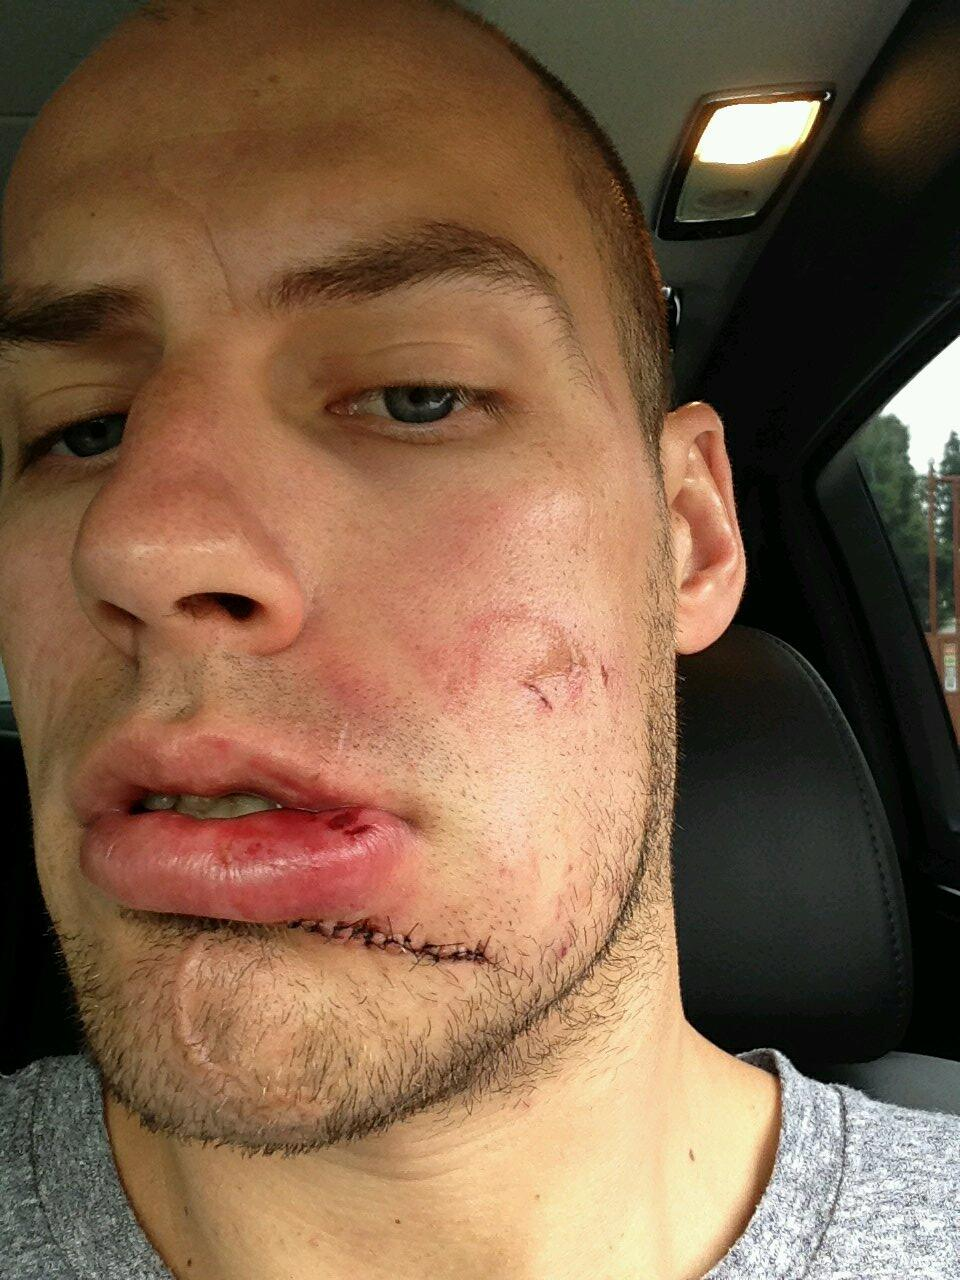 RT @ChrisGetzlaf: One of the toughest guys I know #warrior #ducks #playoffperformer #saskboy http://t.co/ieVIthEx8D